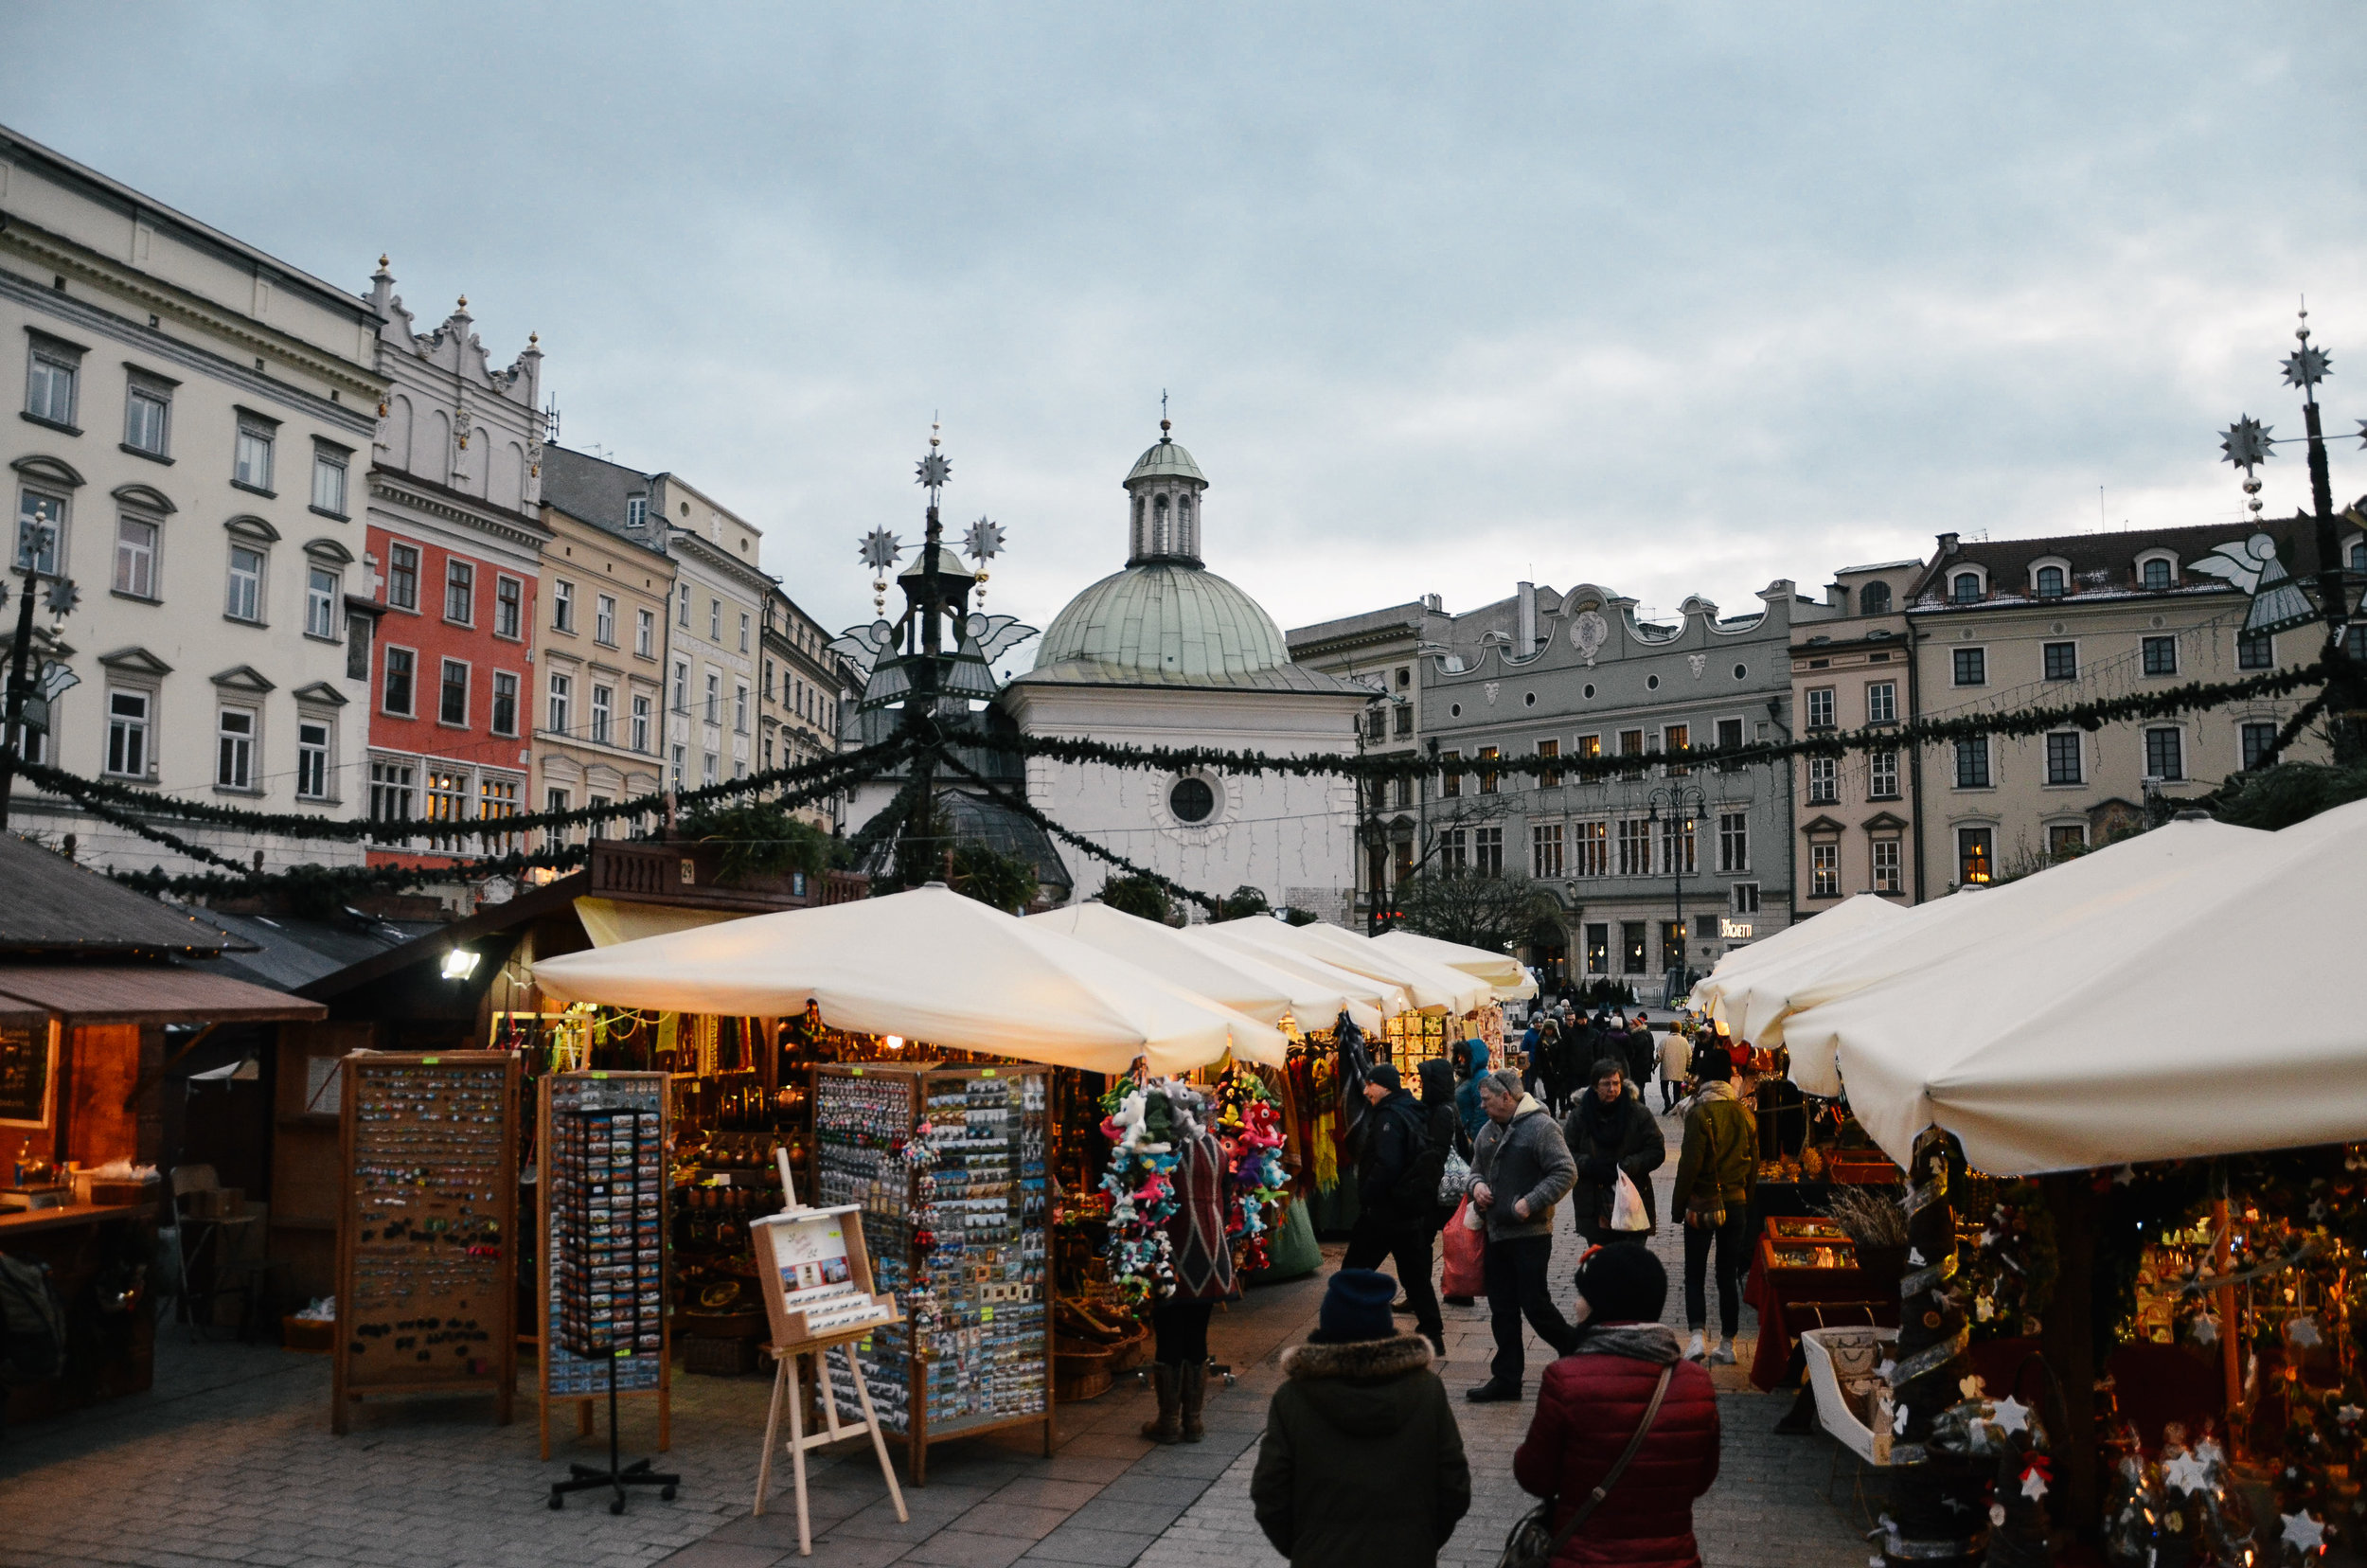 european-christmas-market-travel-guide-lifeonpine_DSC_0979.jpg